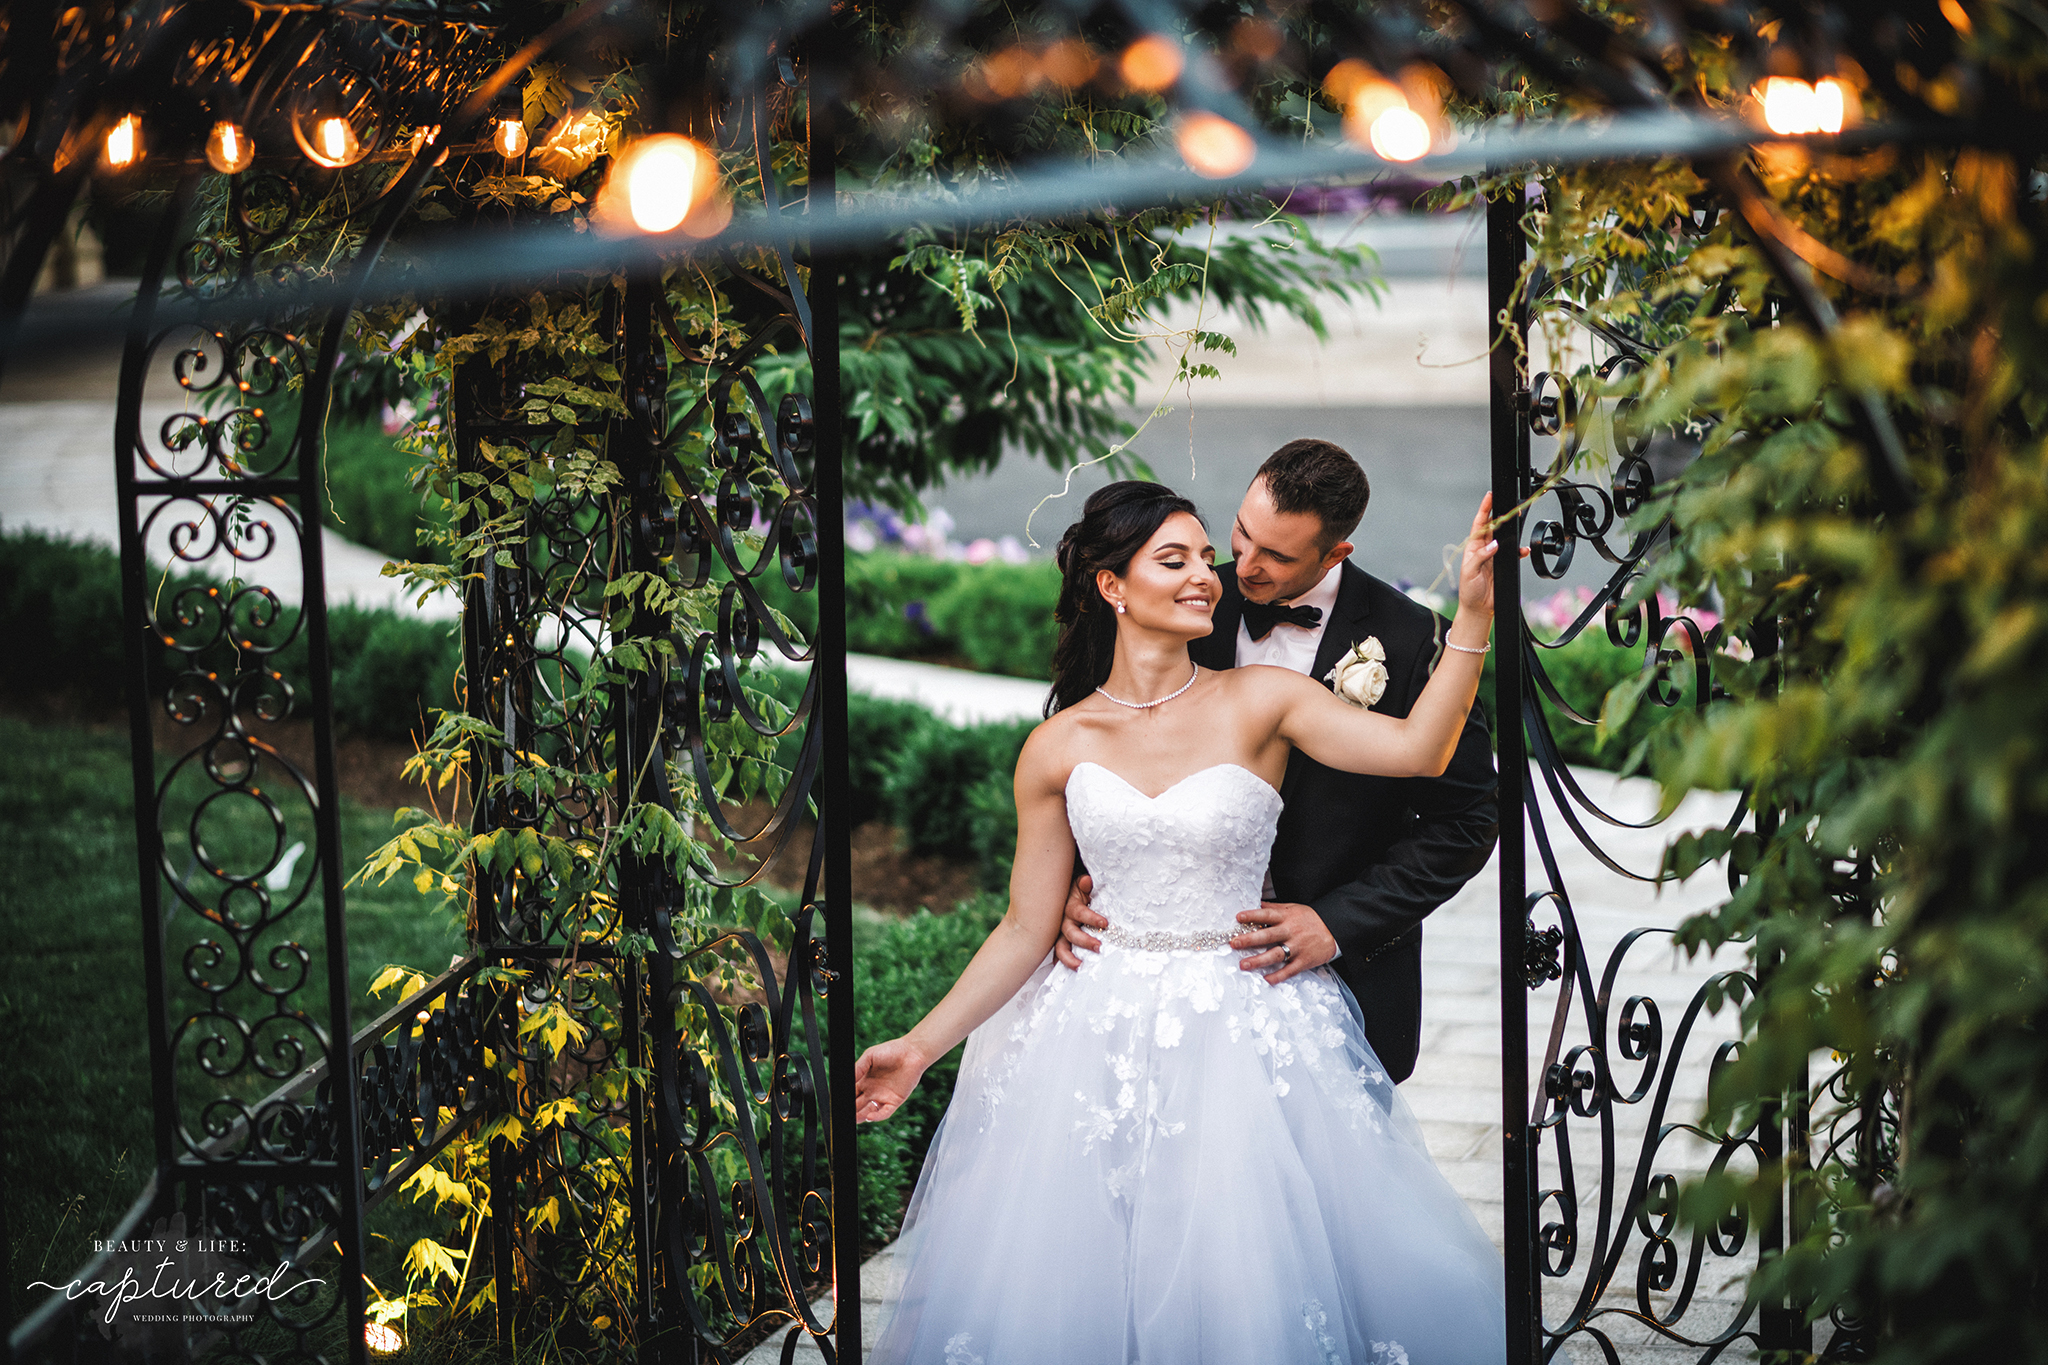 Beautyandlifecaptured_Ista_wedd-57.jpg